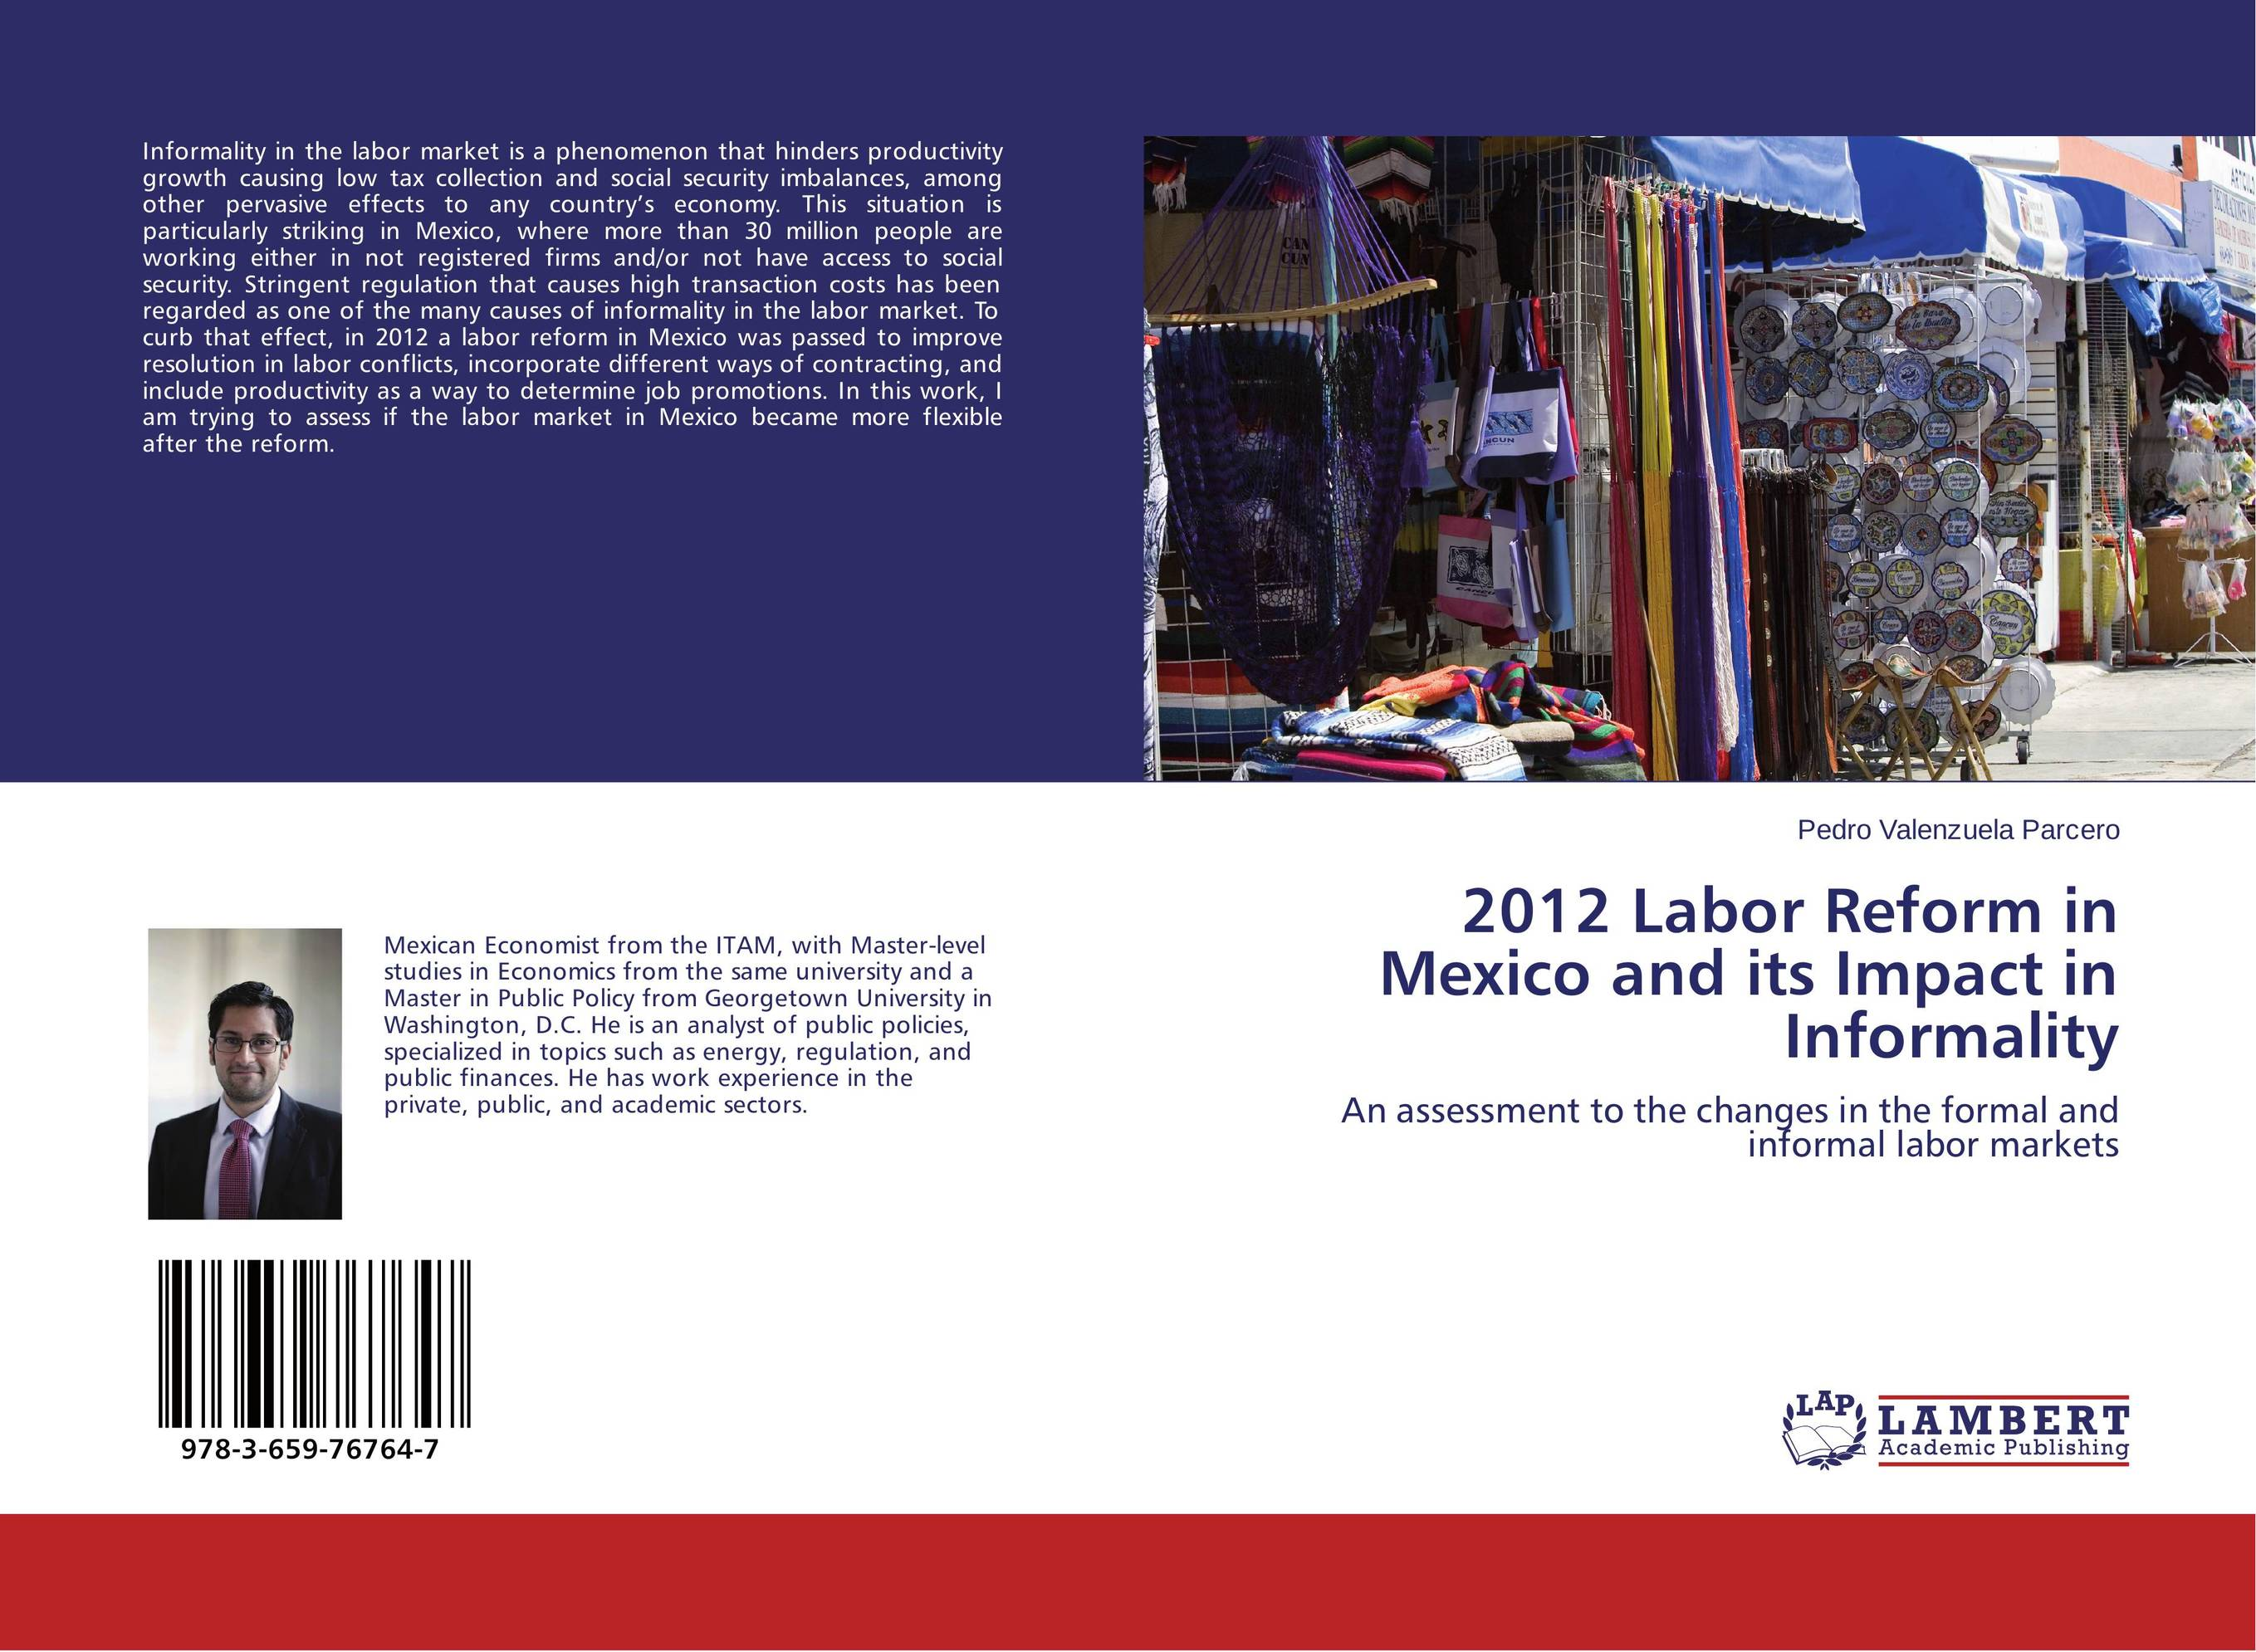 2012 Labor Reform in Mexico and its Impact in Informality